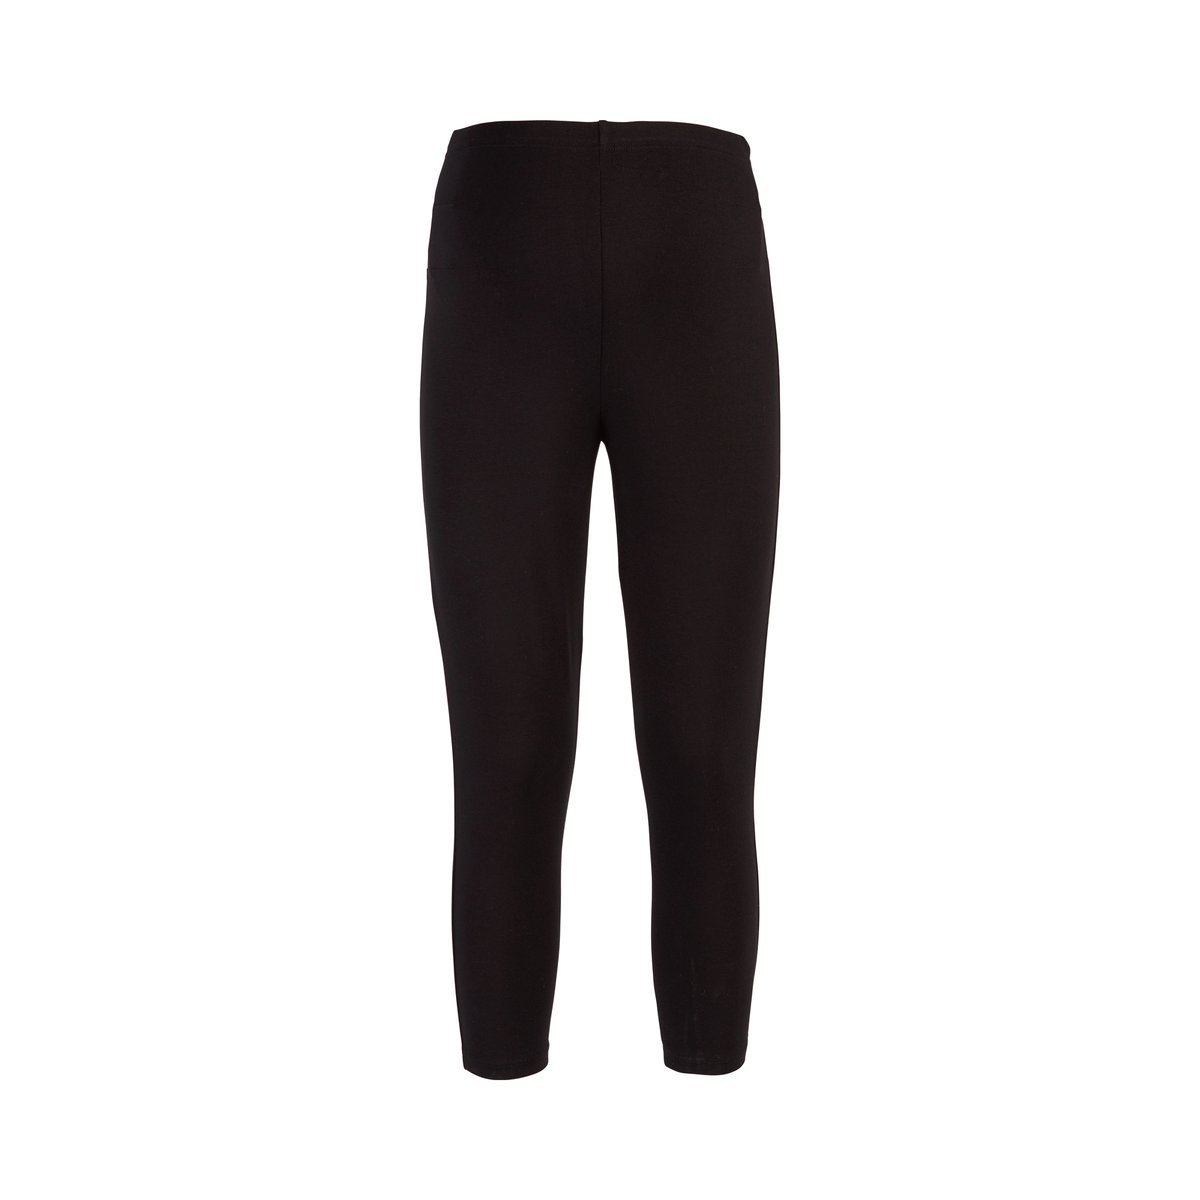 2HEARTS Umstands-Leggings We Love Basics//Umstandsmode Damen//Caprihose f/ür werdende Mamas//schwarz